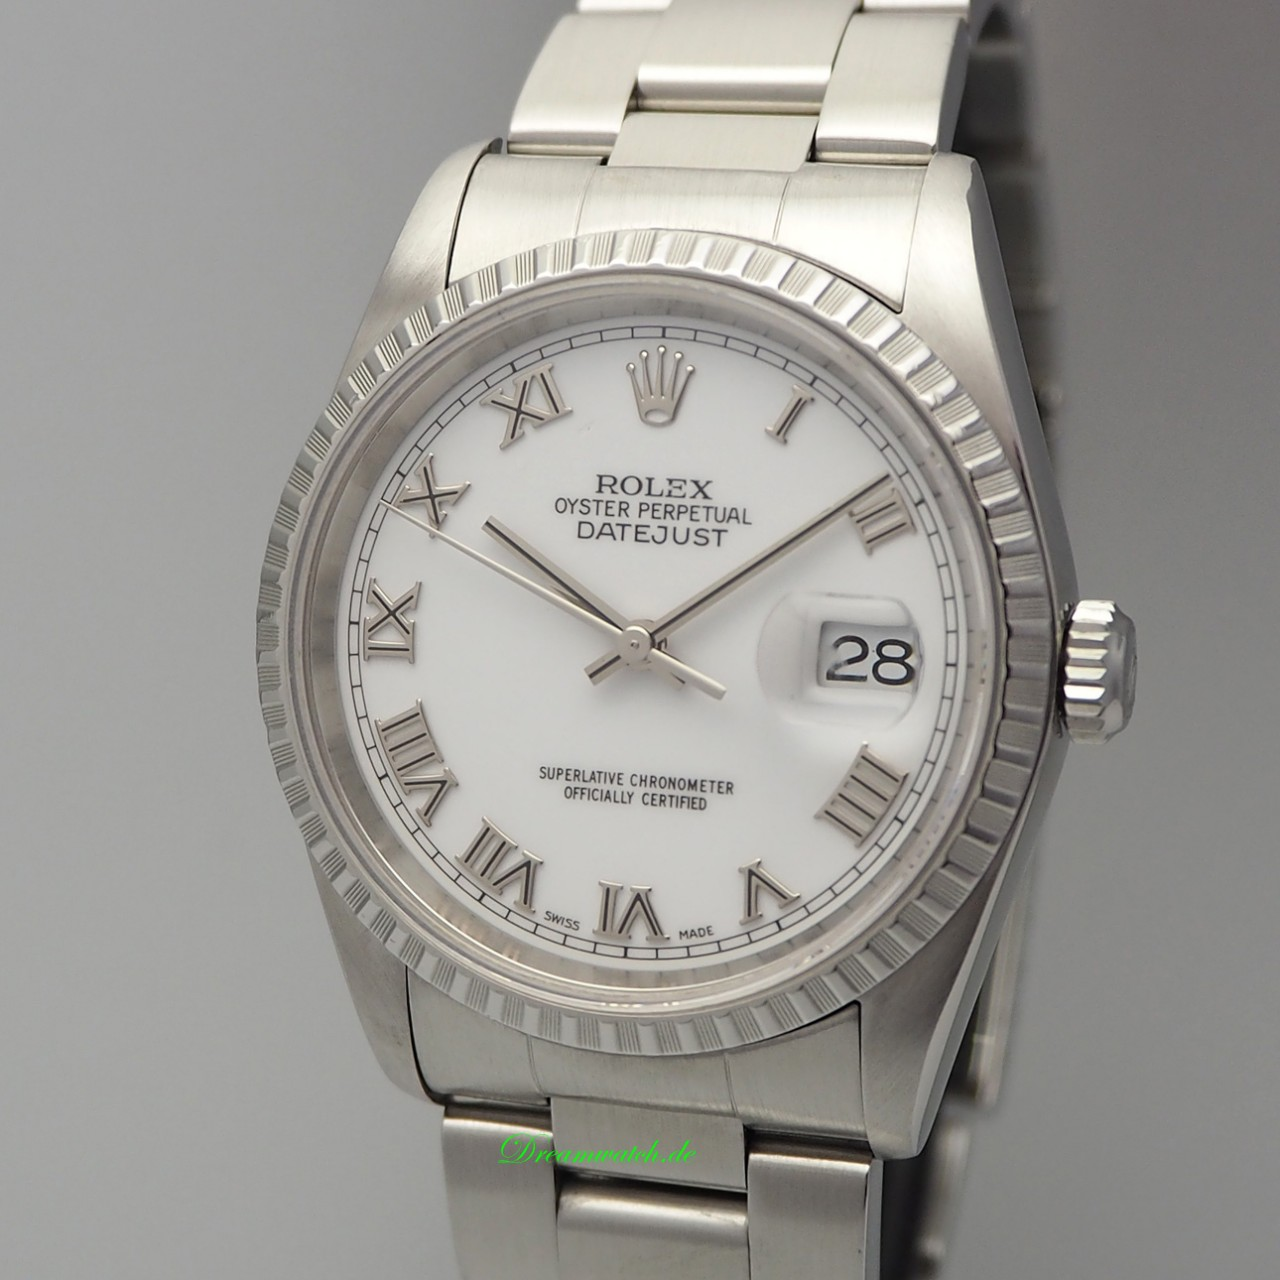 Rolex Oyster Perpetual Datejust 16220 Stahl/ Stahl, aus 2001/2002 top condition